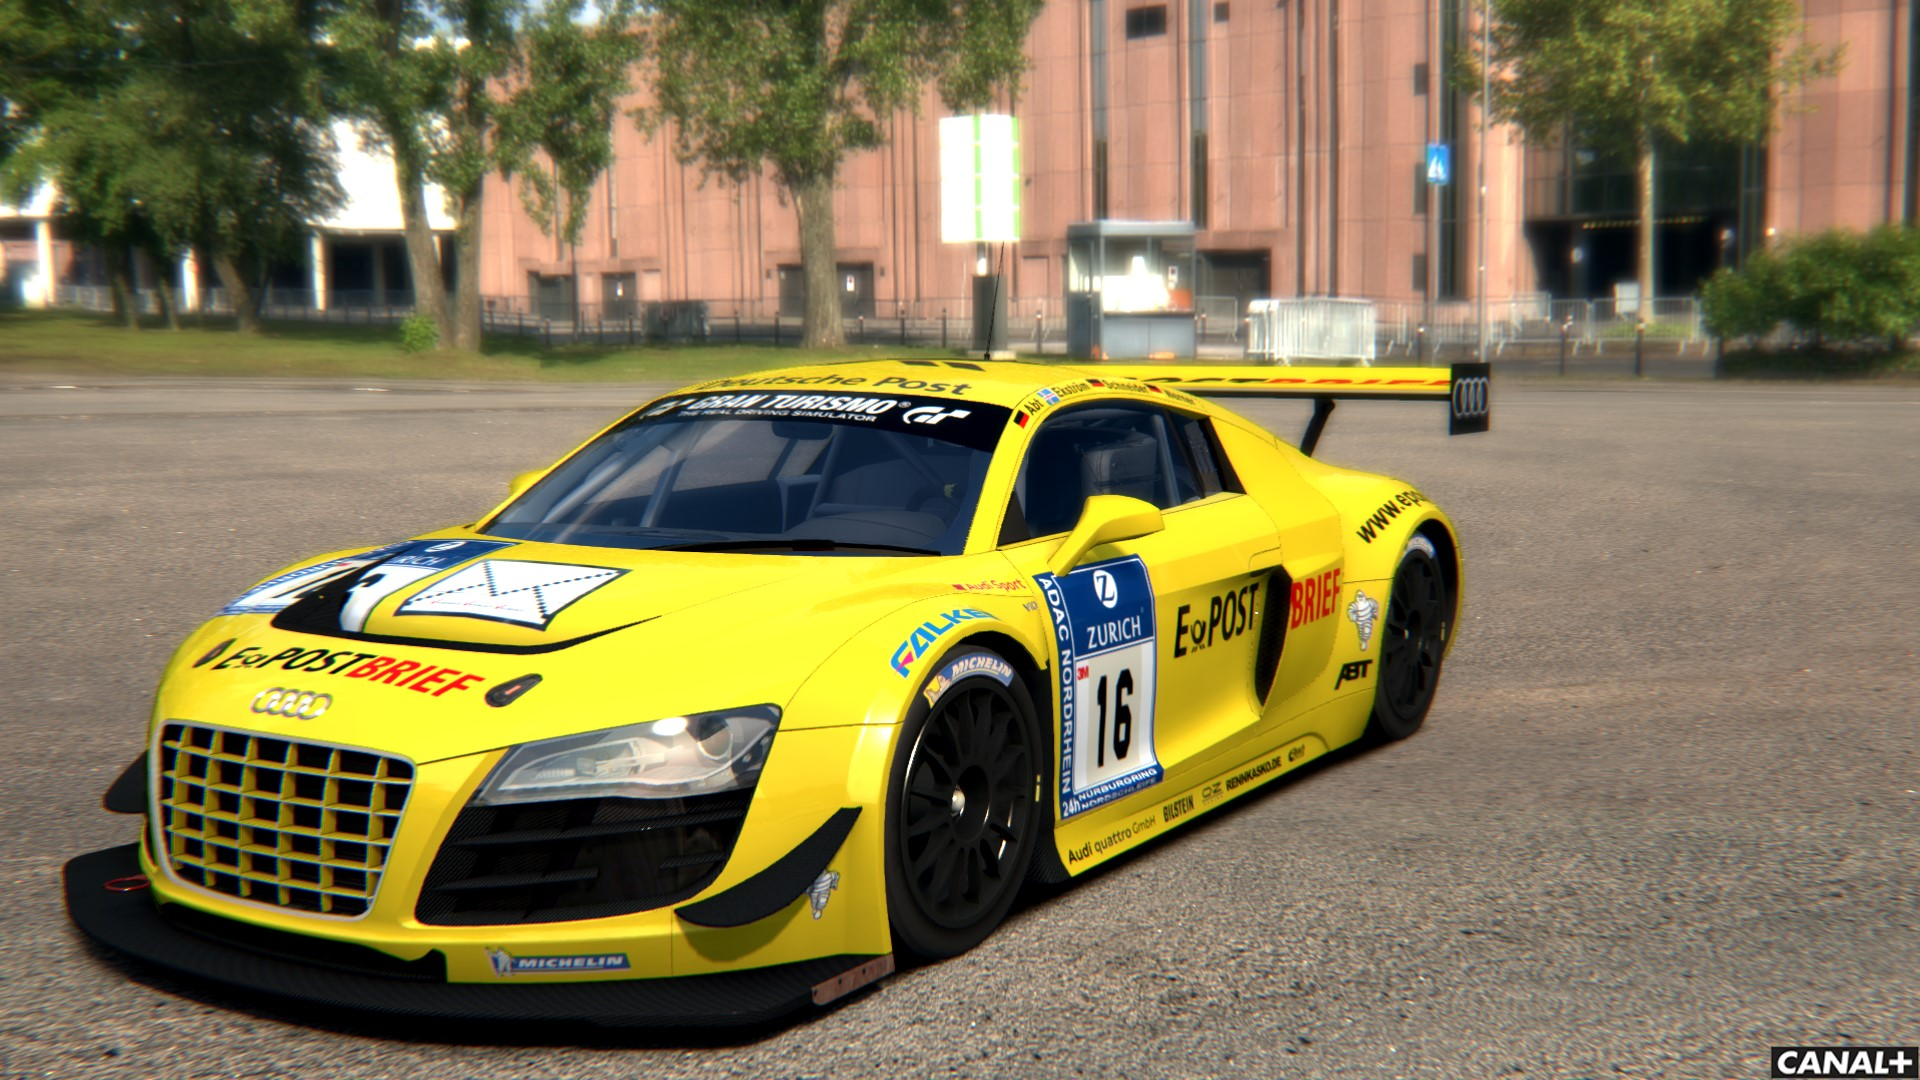 Showroom_audi_r8_lms_27-10-2014-1-9-11.jpg